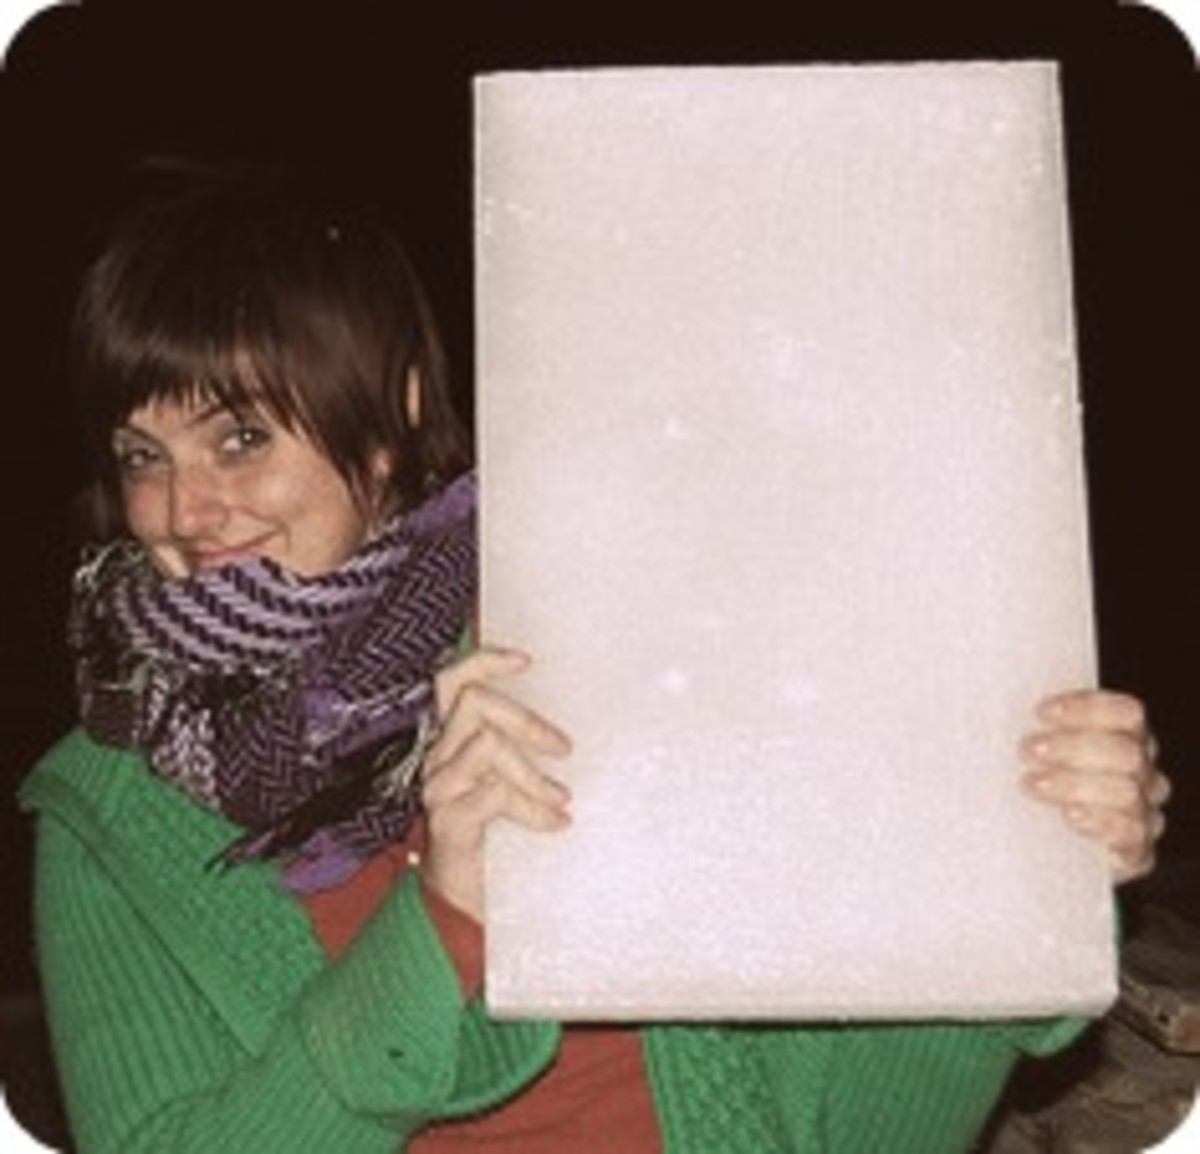 Mischievous person wielding a block of wax